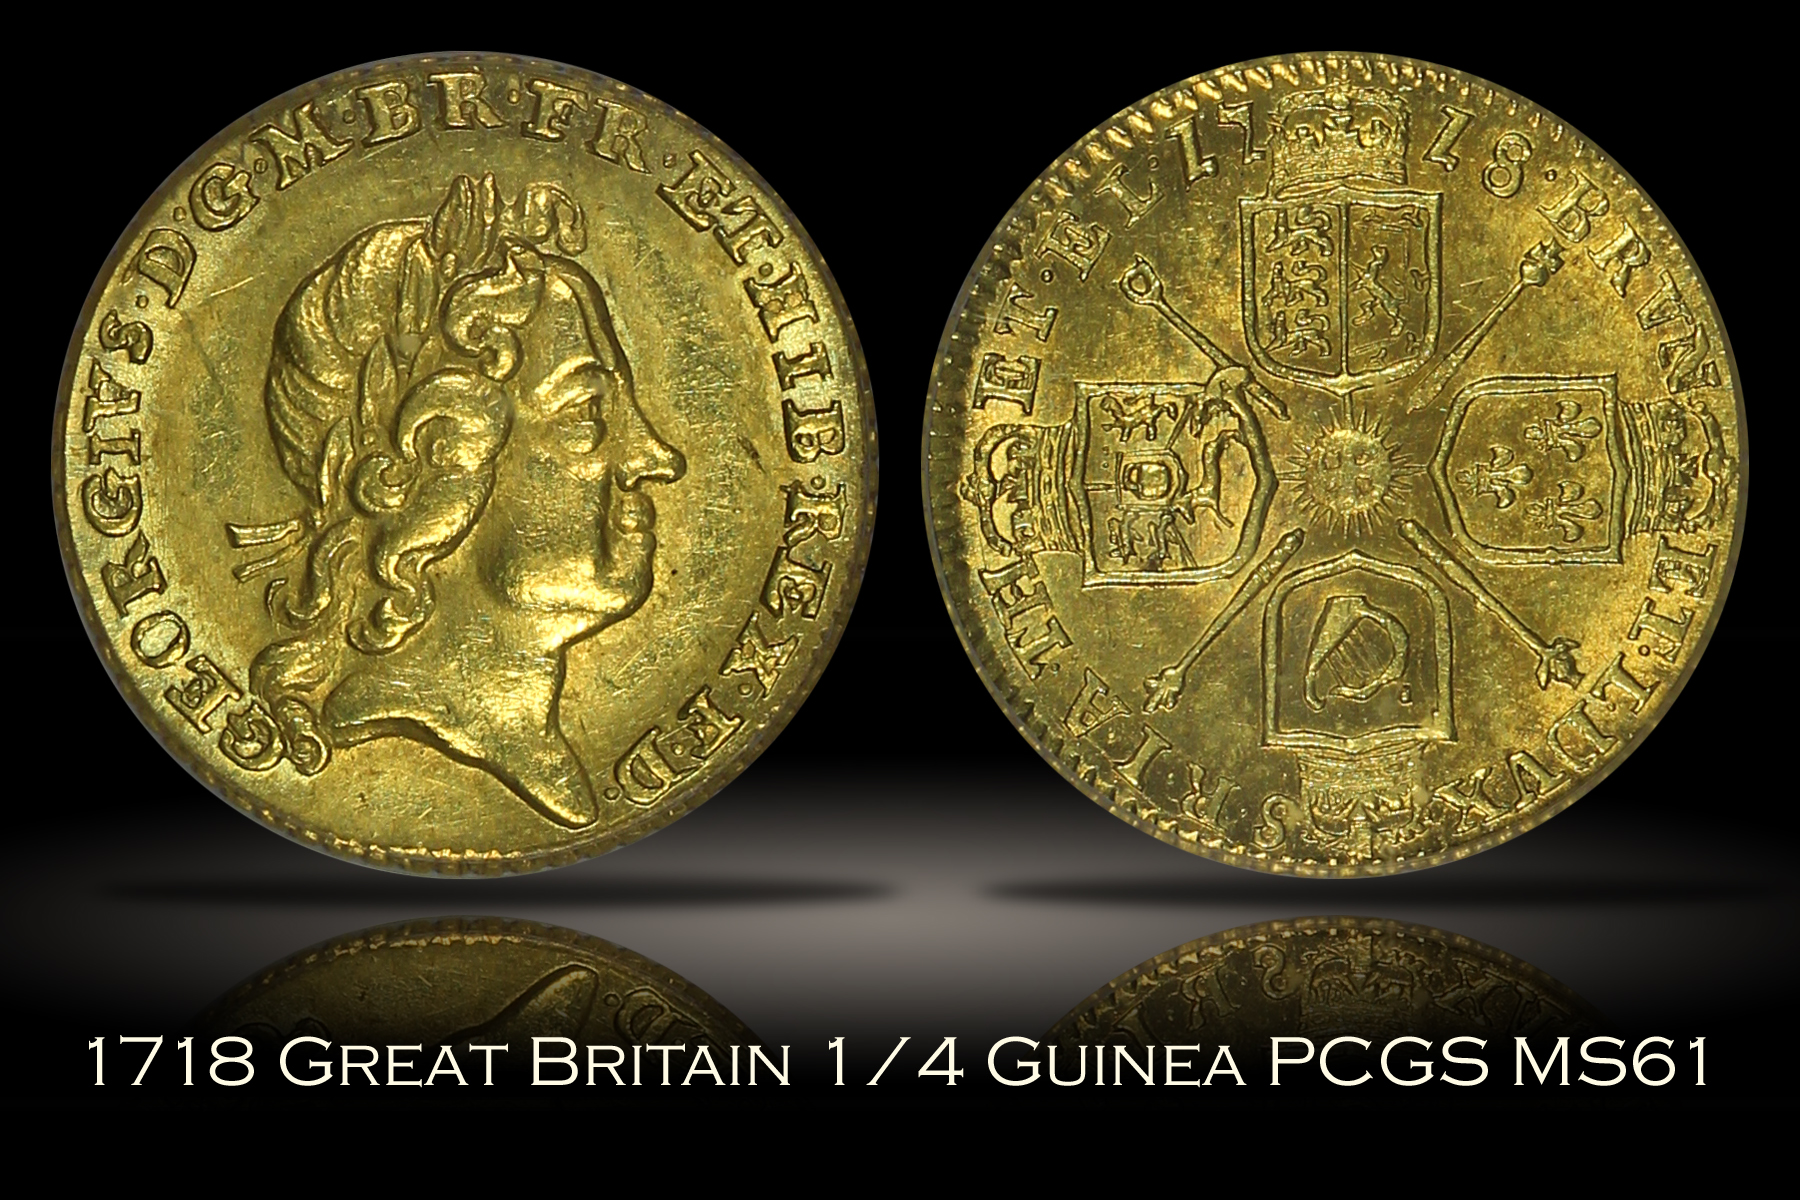 1718 Great Britain 1/4 Guinea Gold PCGS MS61